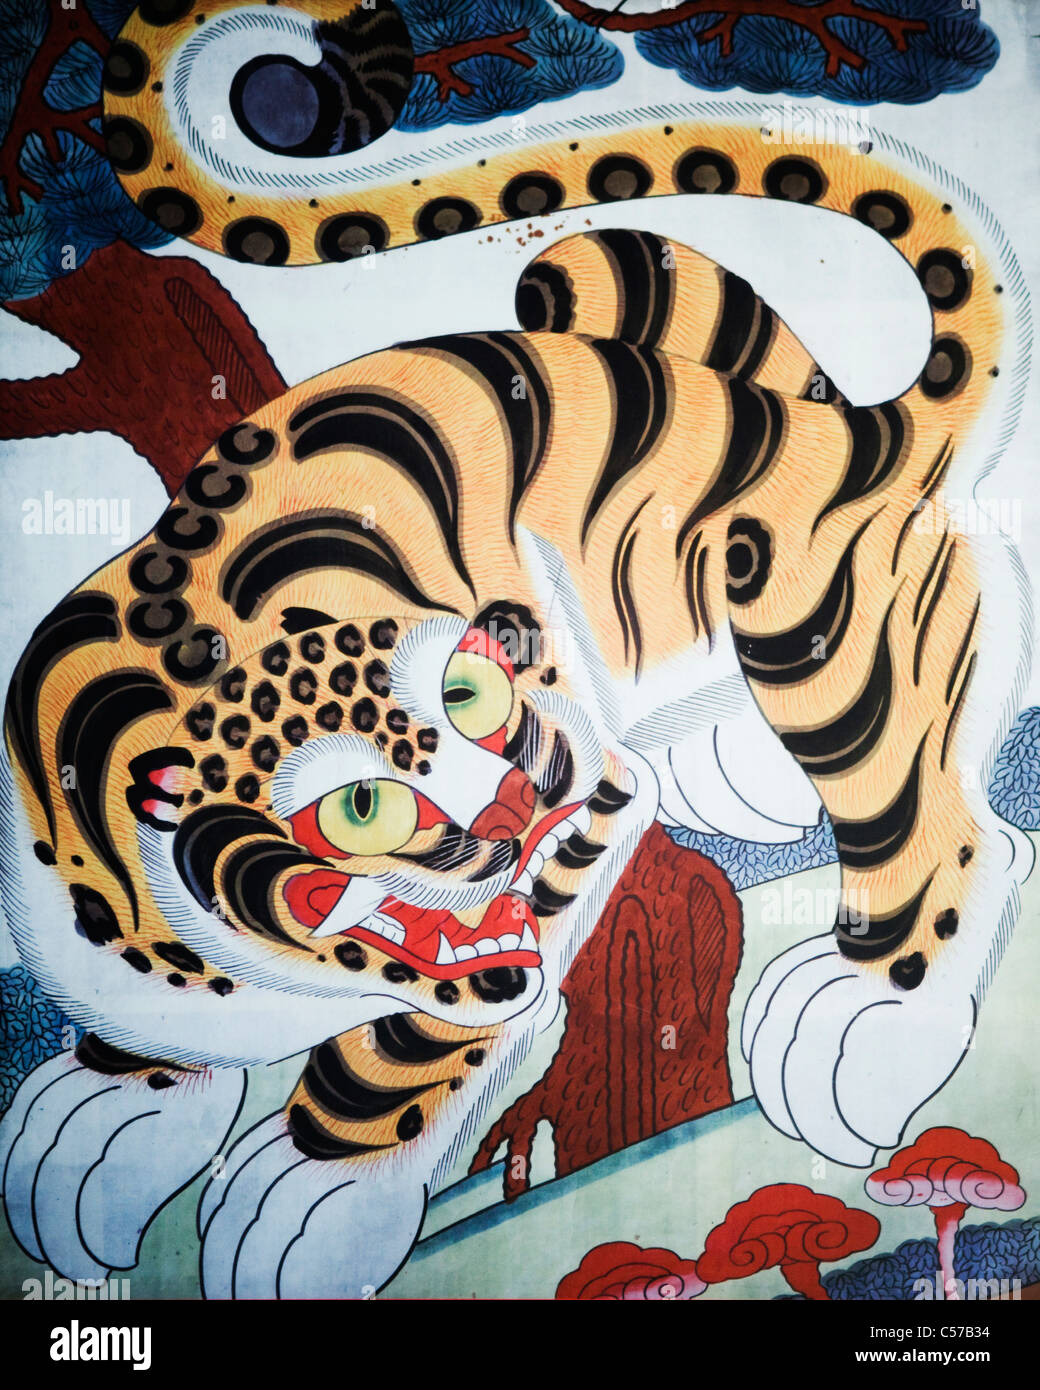 Minhwa Korean Folk Painting Showing The Tiger Symbol Of Courage